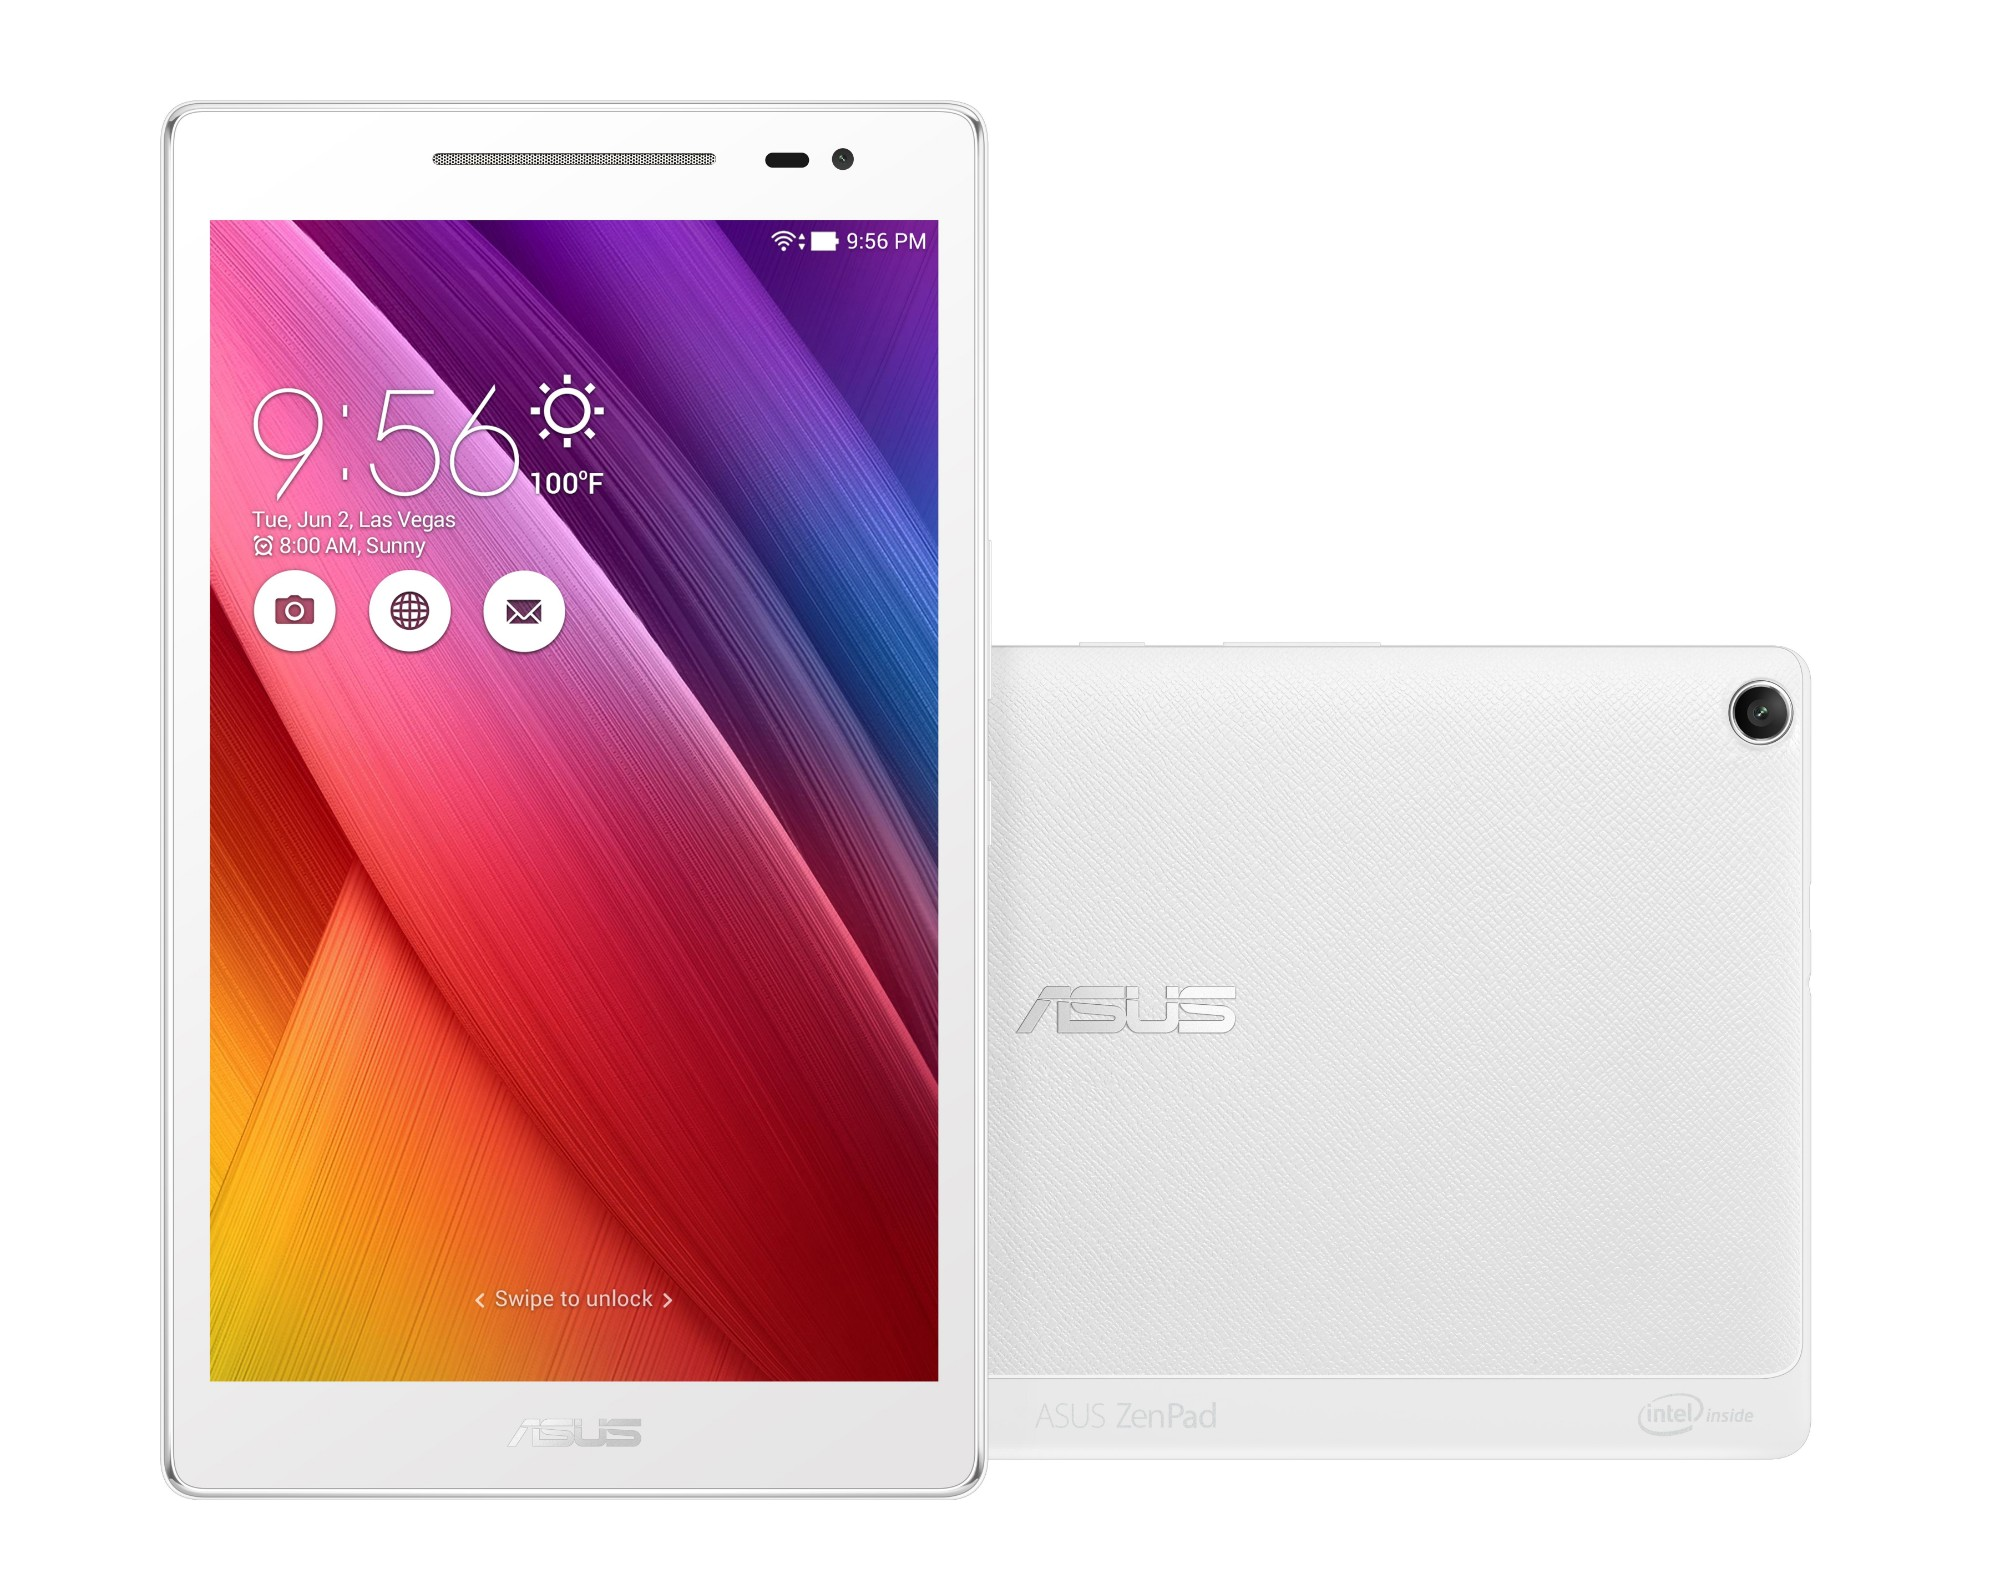 ASUS ZenPad Z380M-6B033A 16GB White tablet